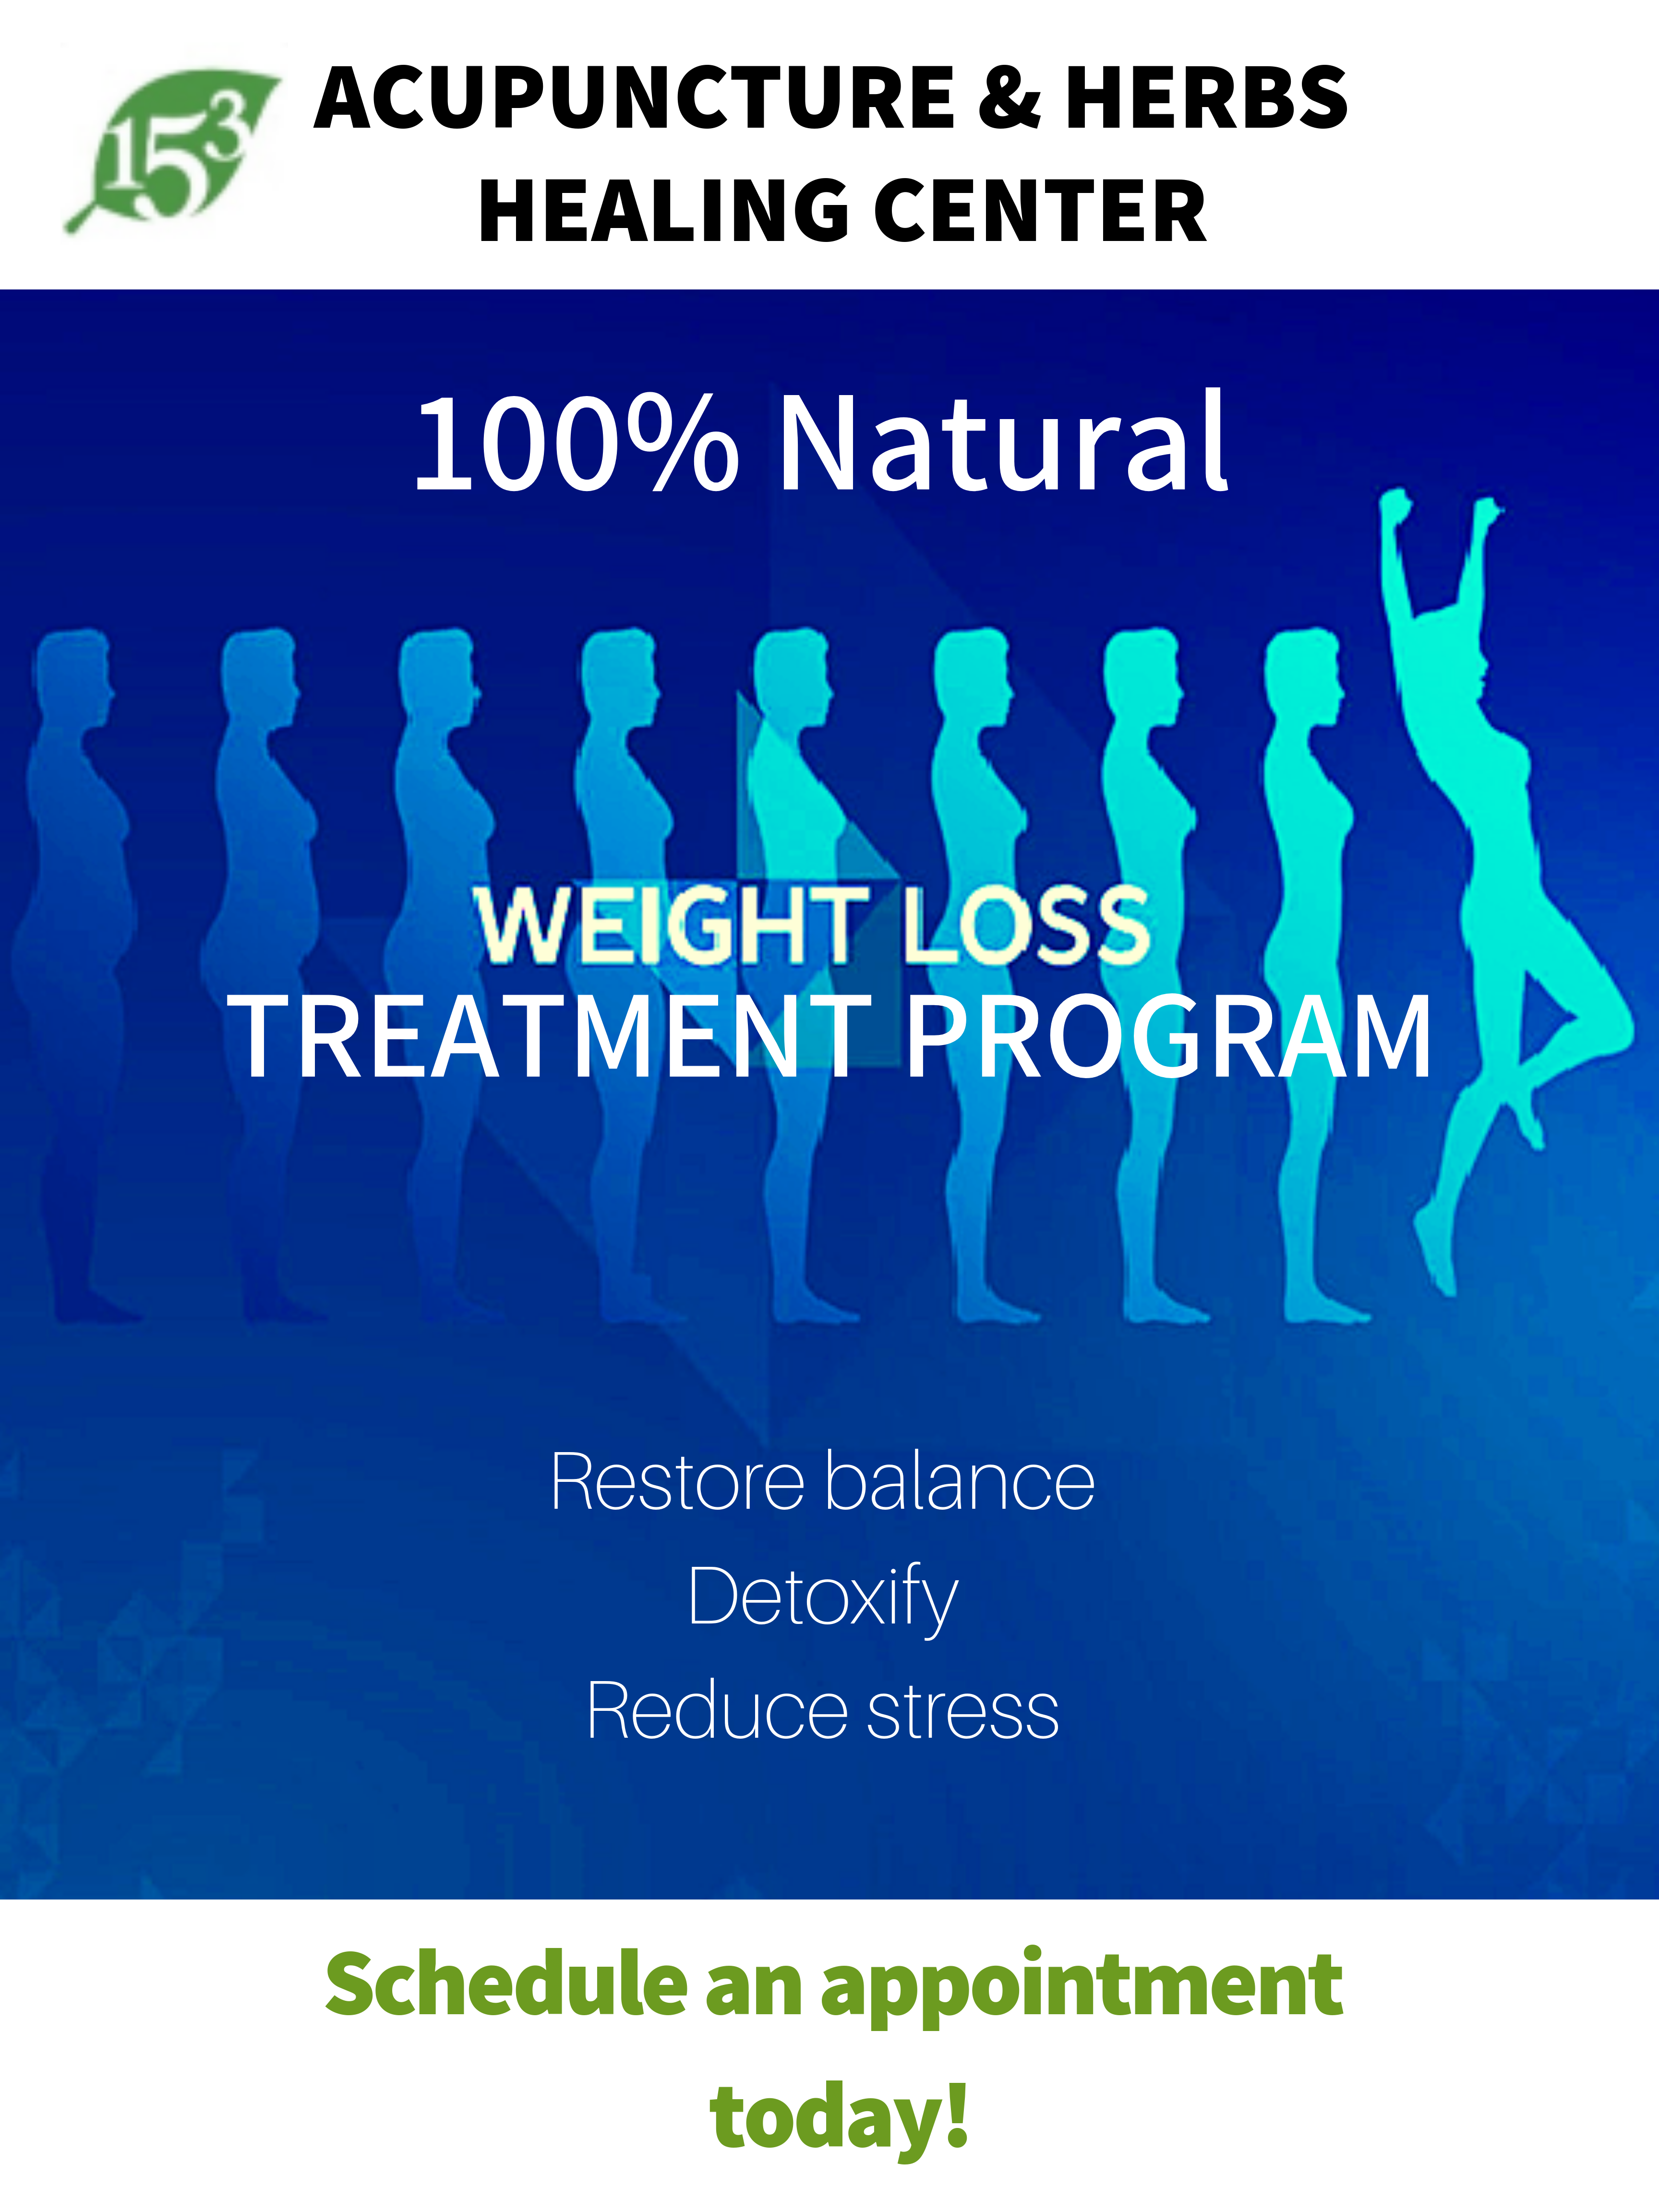 New Weight Loss Treatment Program